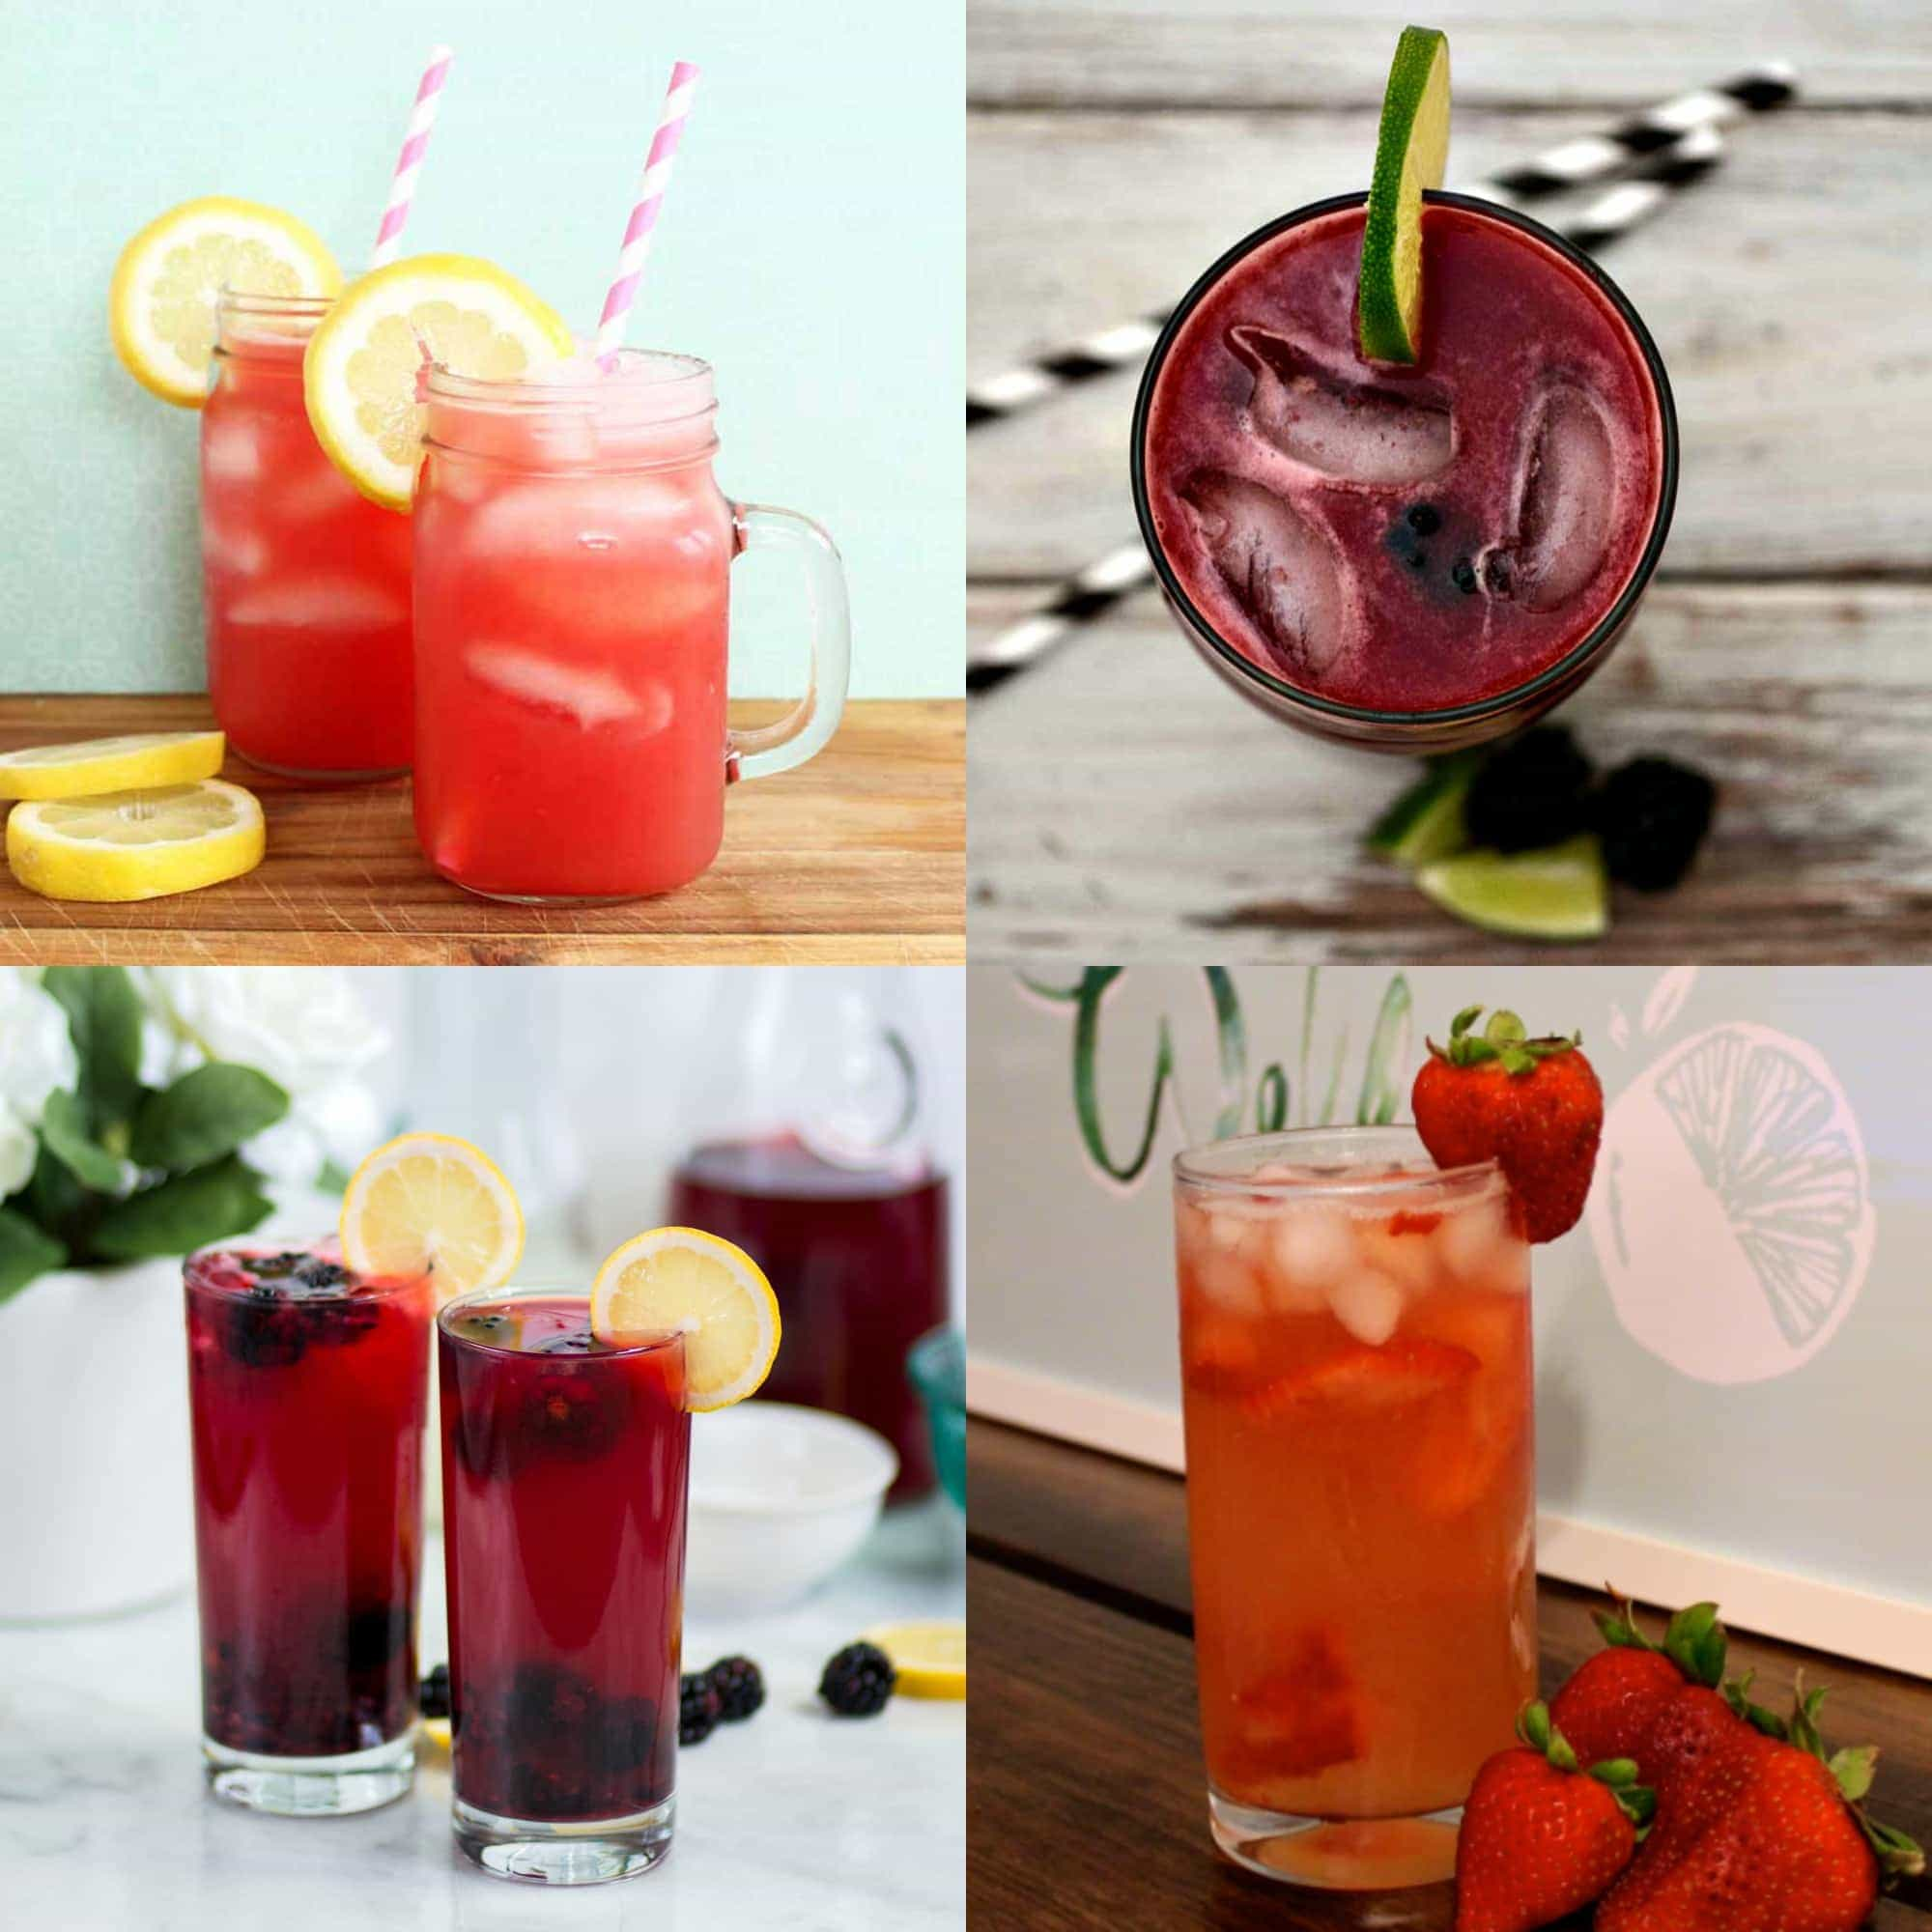 Cool and Refreshing Summer Drinks - Lemonade and Limeade Recipes